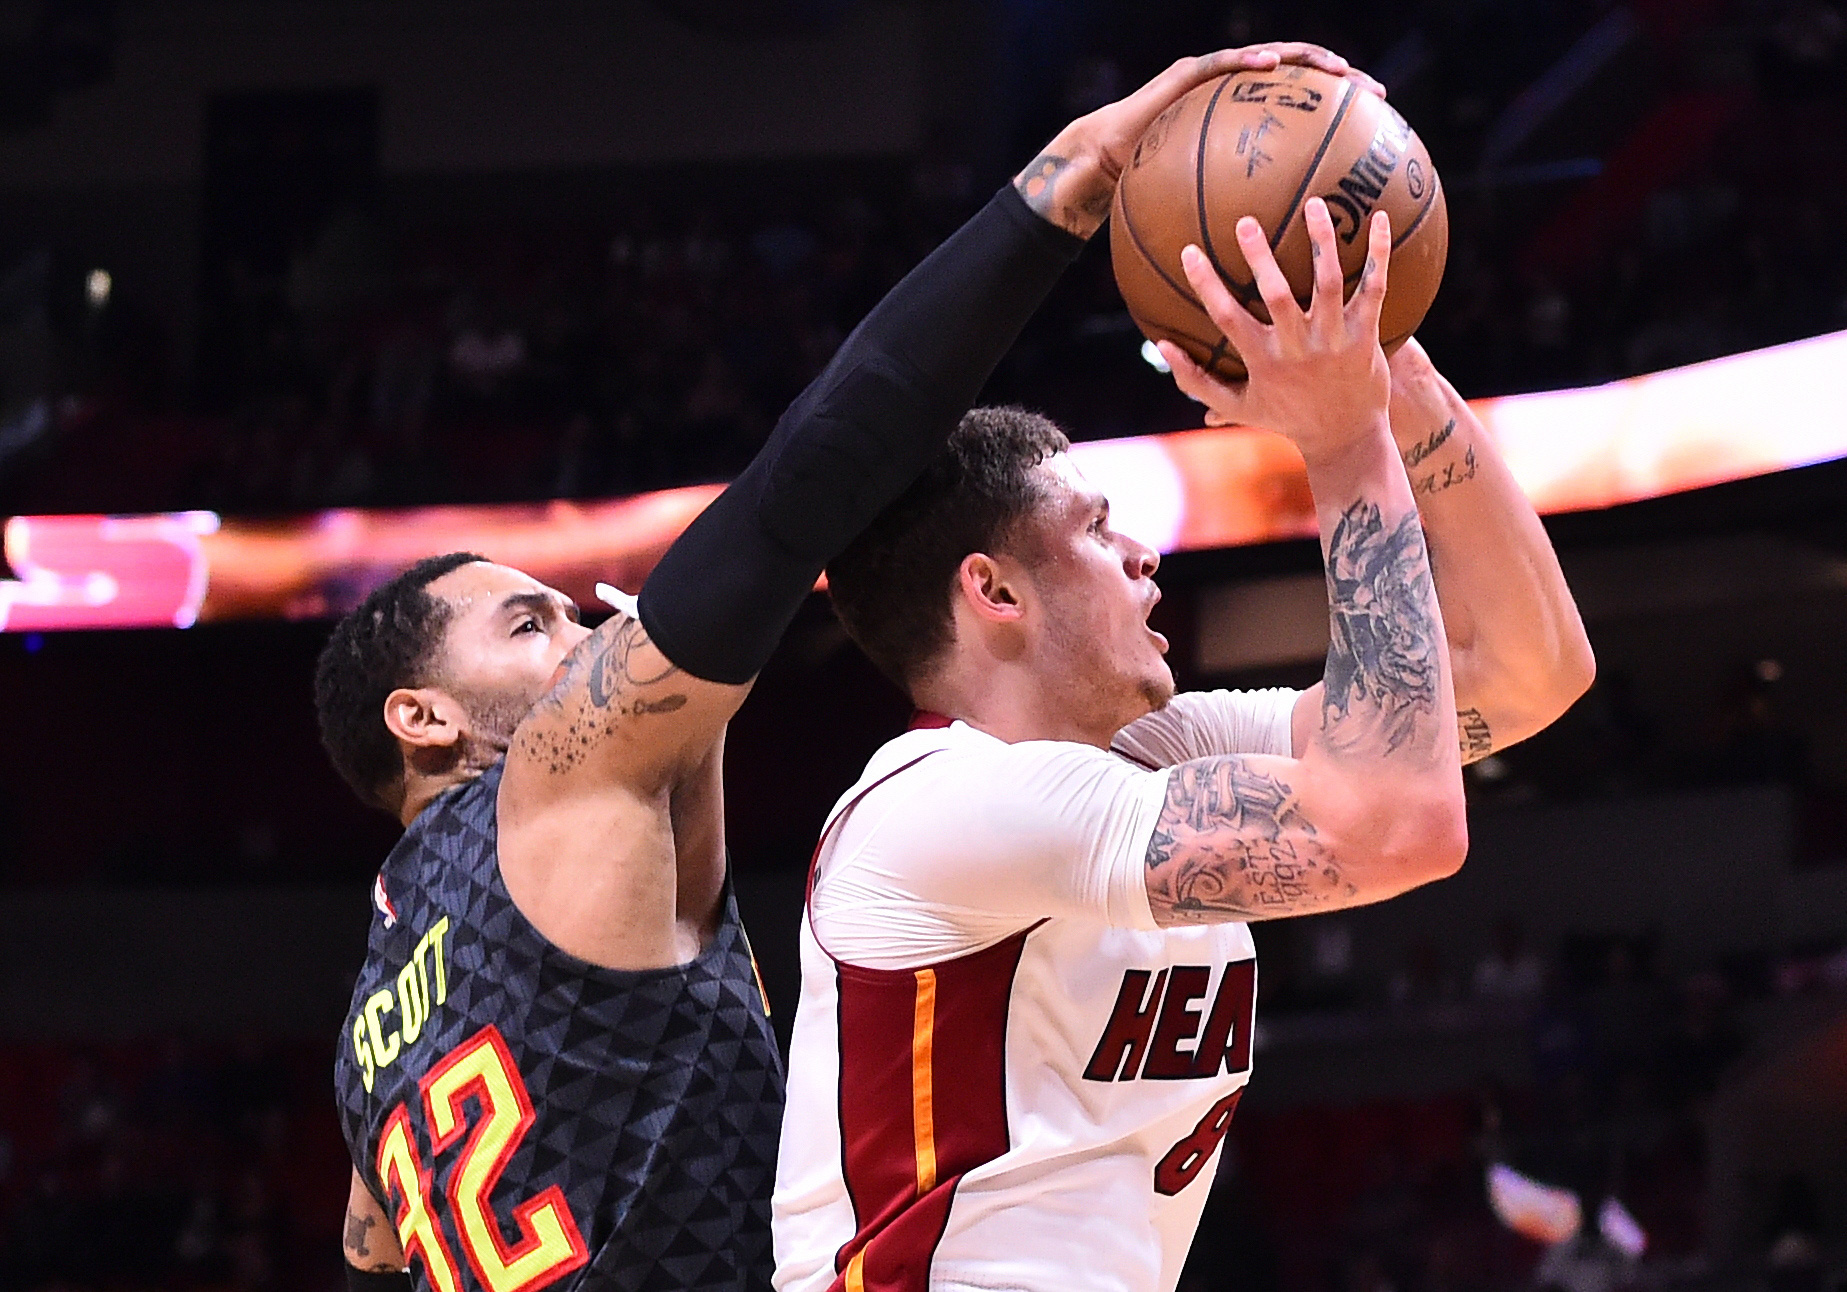 9856991-nba-atlanta-hawks-at-miami-heat